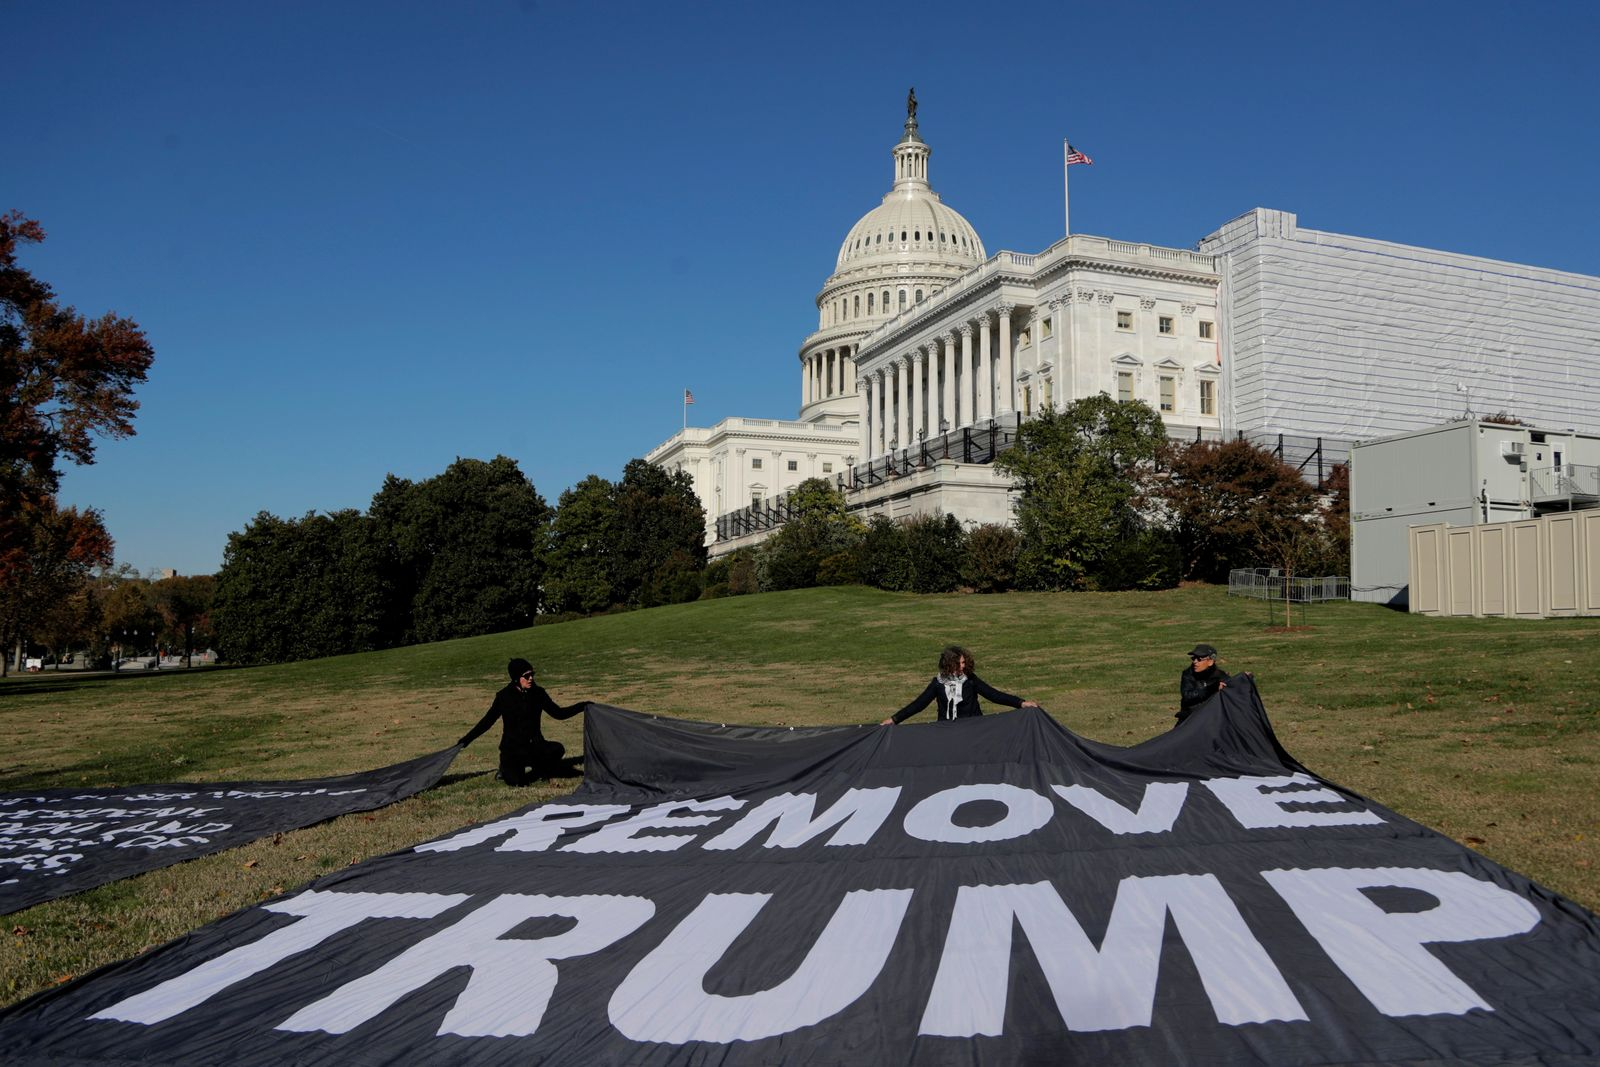 Demonstrators kneel near large banners on the lawn adjacent to the U.S. Capitol, while a top U.S. diplomat in Ukraine William Taylor, and career Foreign Service officer George Kent, testify before the House Intelligence Committee on Capitol Hill in Washington, Wednesday, Nov. 13, 2019, during the first public impeachment hearings of President Donald Trump's efforts to tie U.S. aid for Ukraine to investigations of his political opponents. (AP Photo/Julio Cortez)